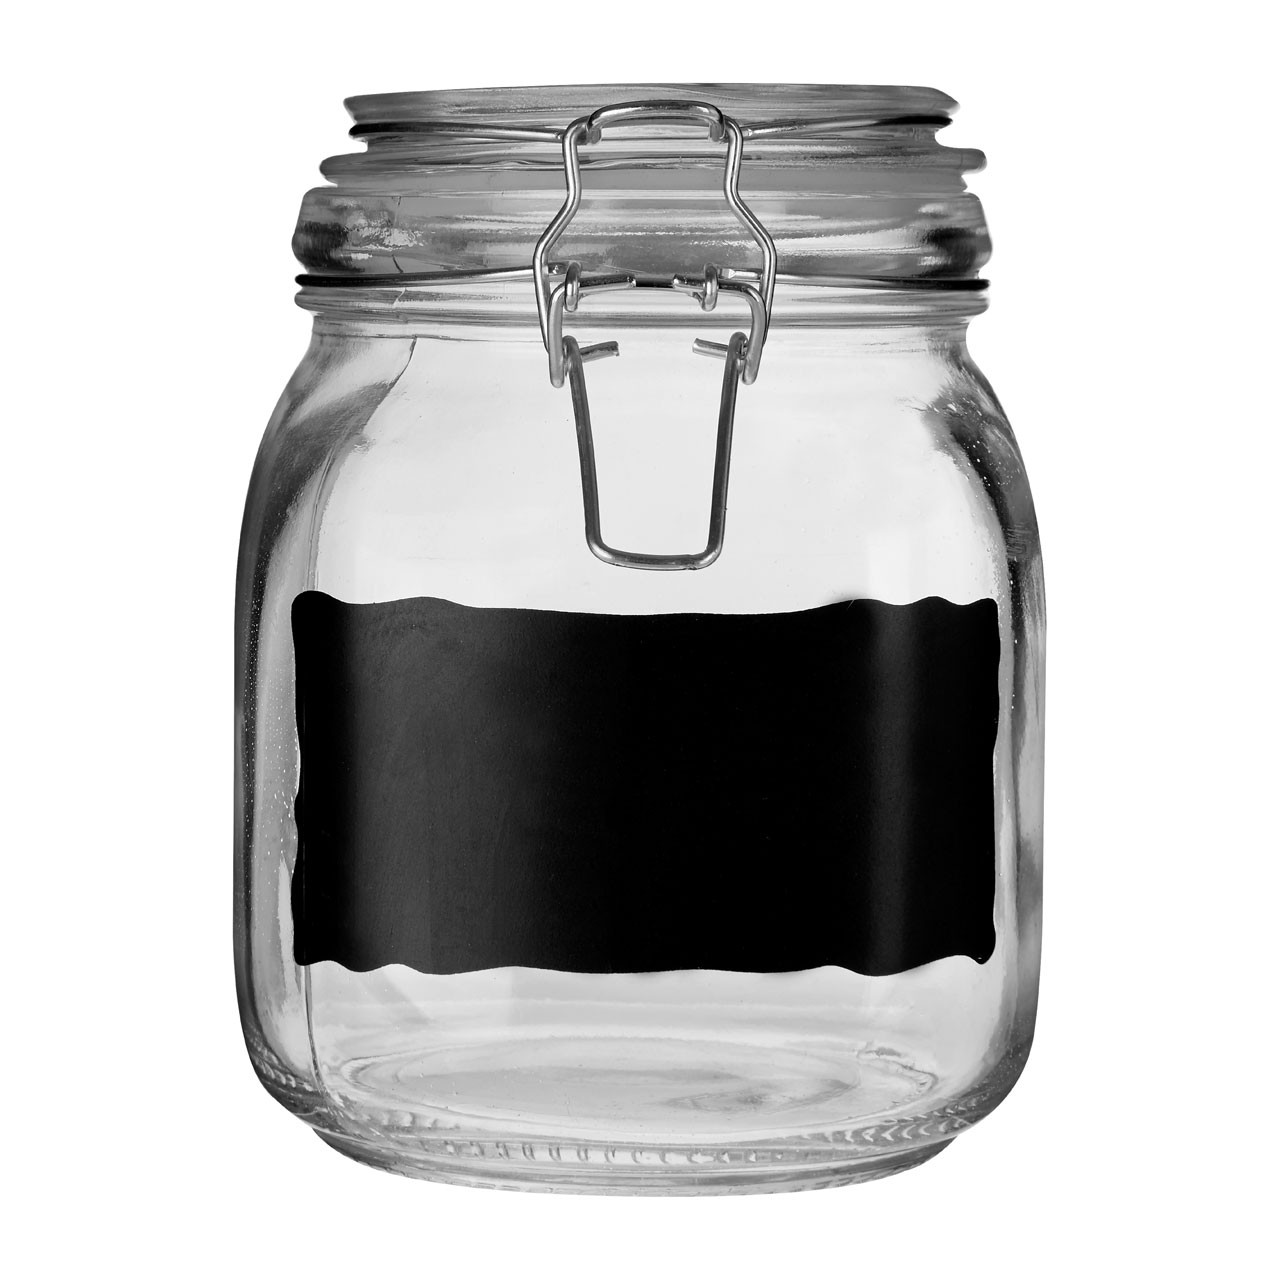 Prime Furnishing Glass Storage Jars With Chalkboard, Set Of 3